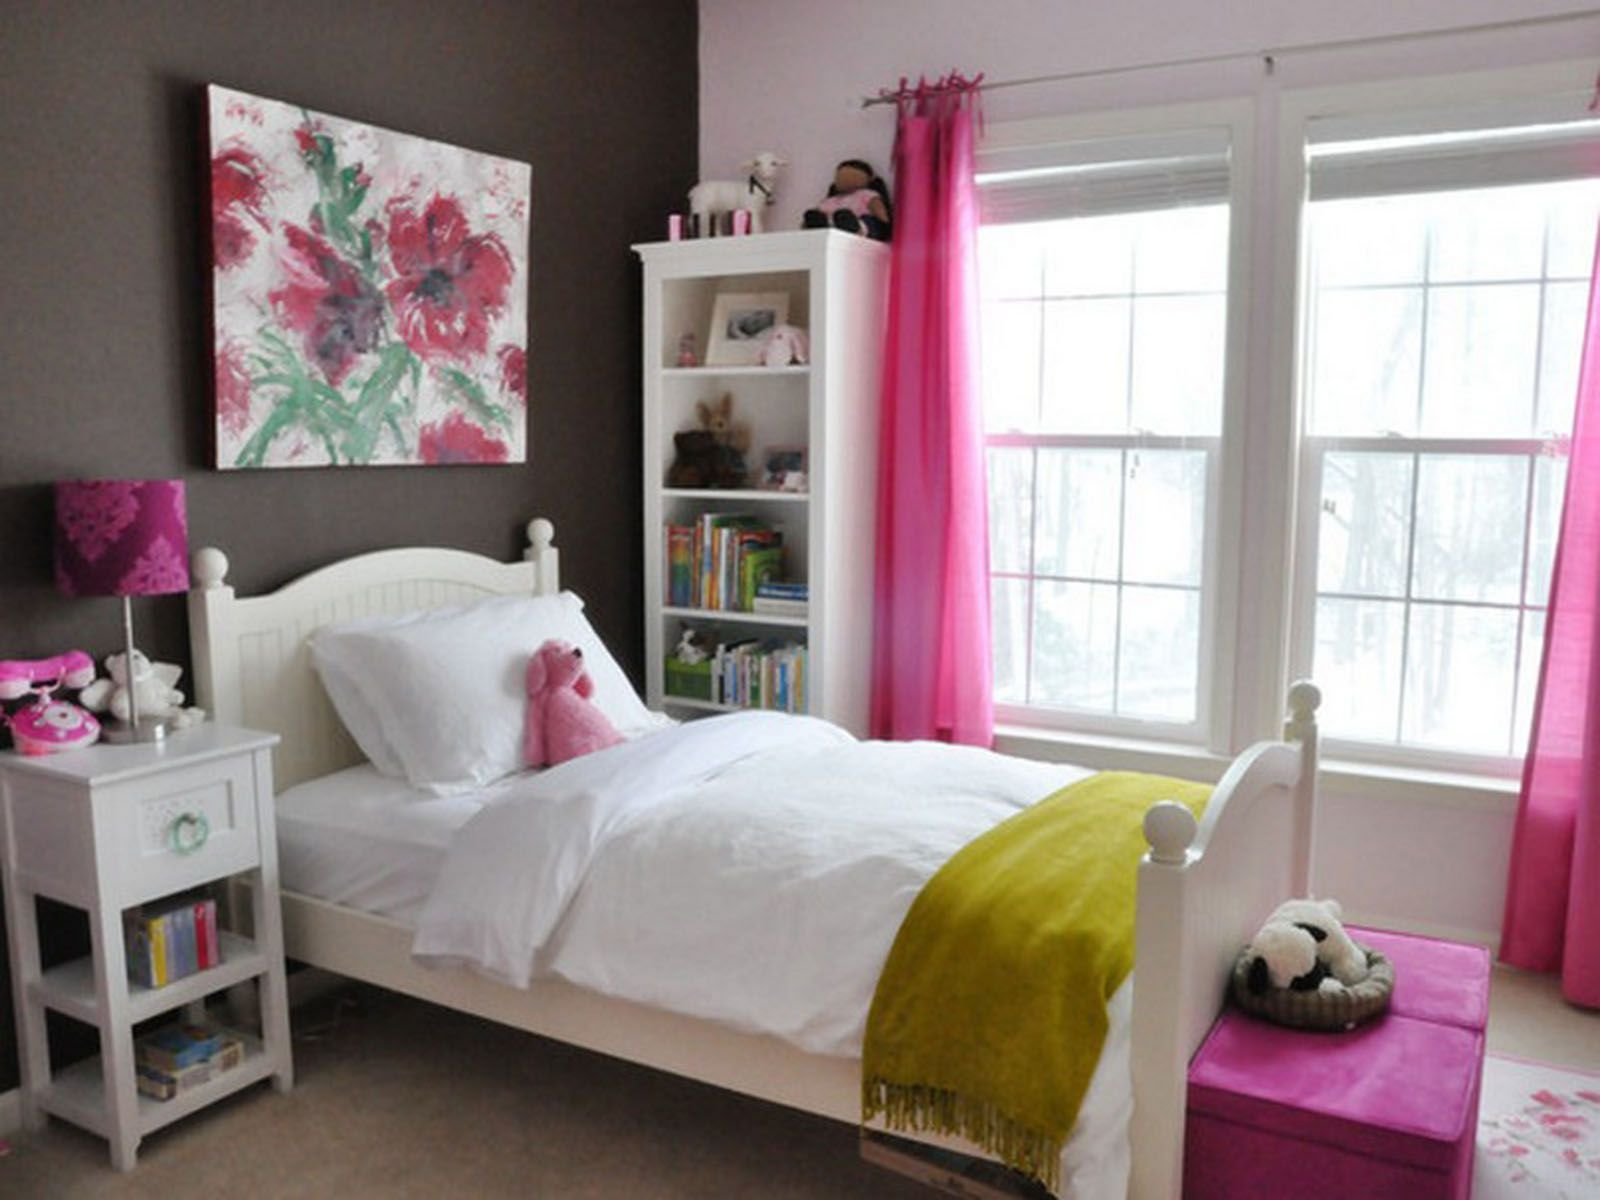 15 Girly Bedroom Designs Inspiration Trend 2019 images